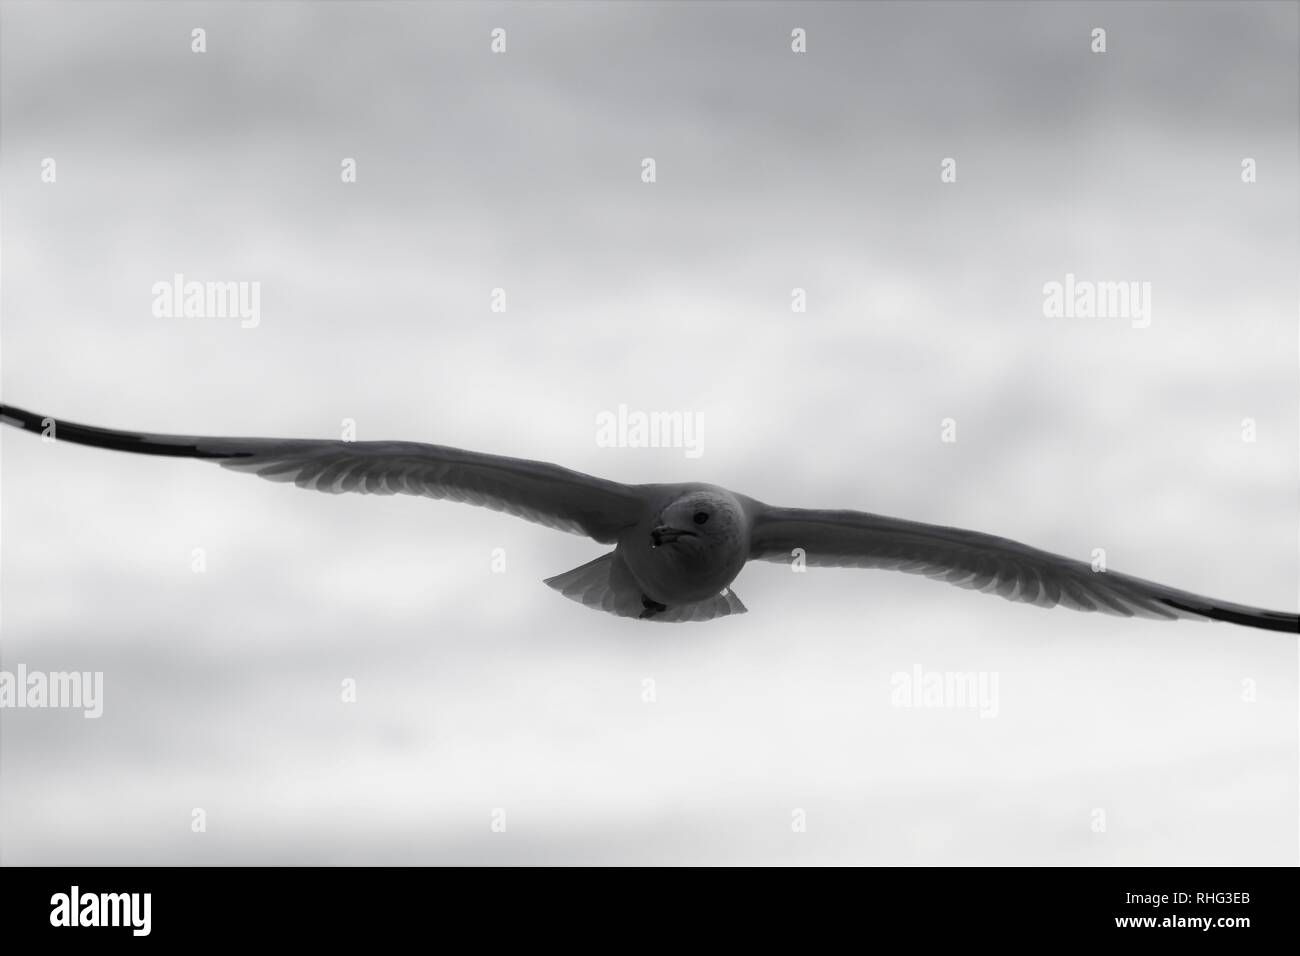 Herring Gull on the Colorado River soaring high with extended wingspan - Stock Image